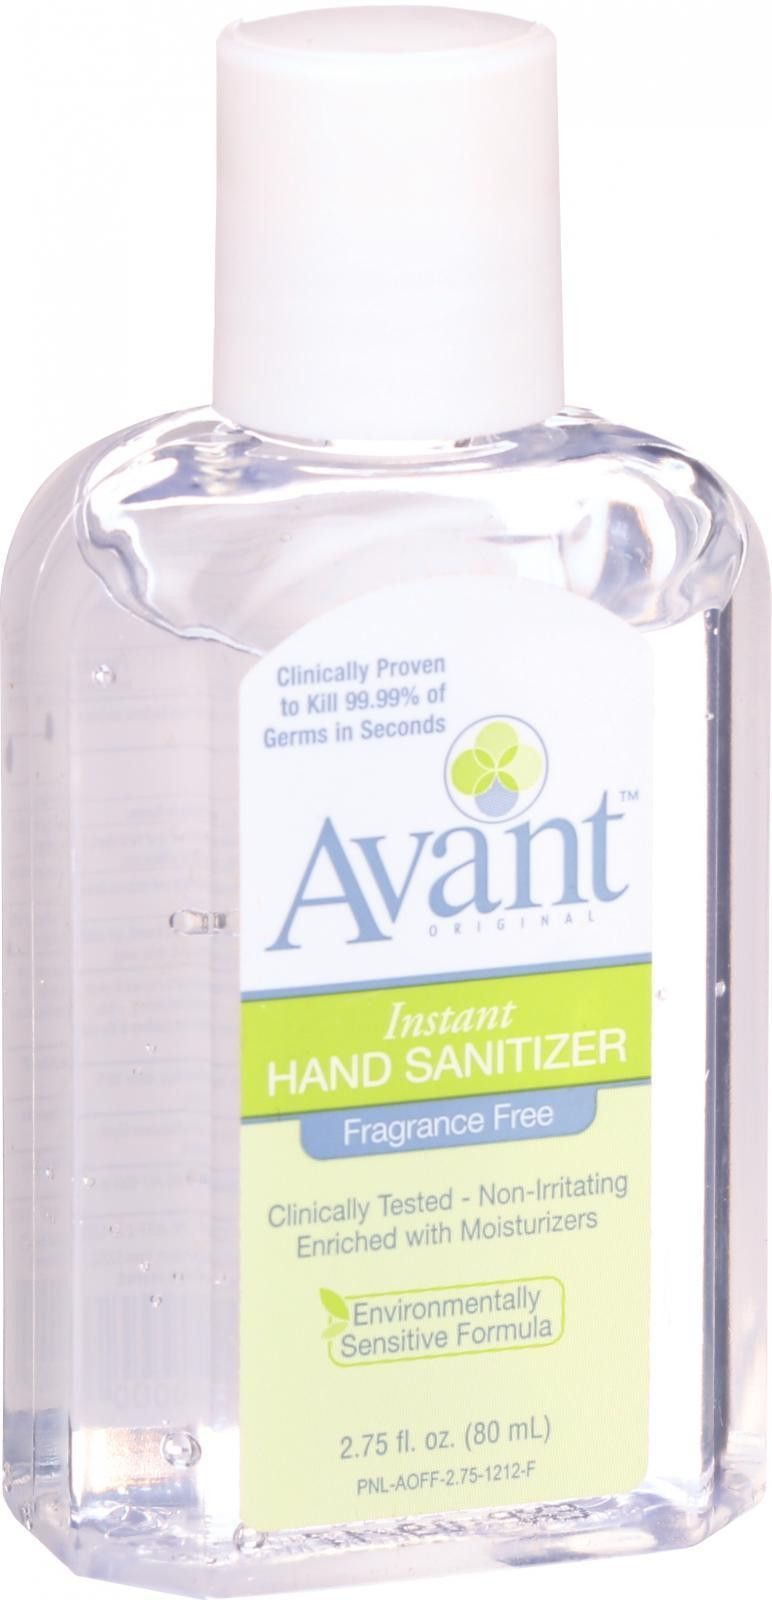 Avant Instant Hand Sanitizer Original Fragrance Free 2 75 Oz